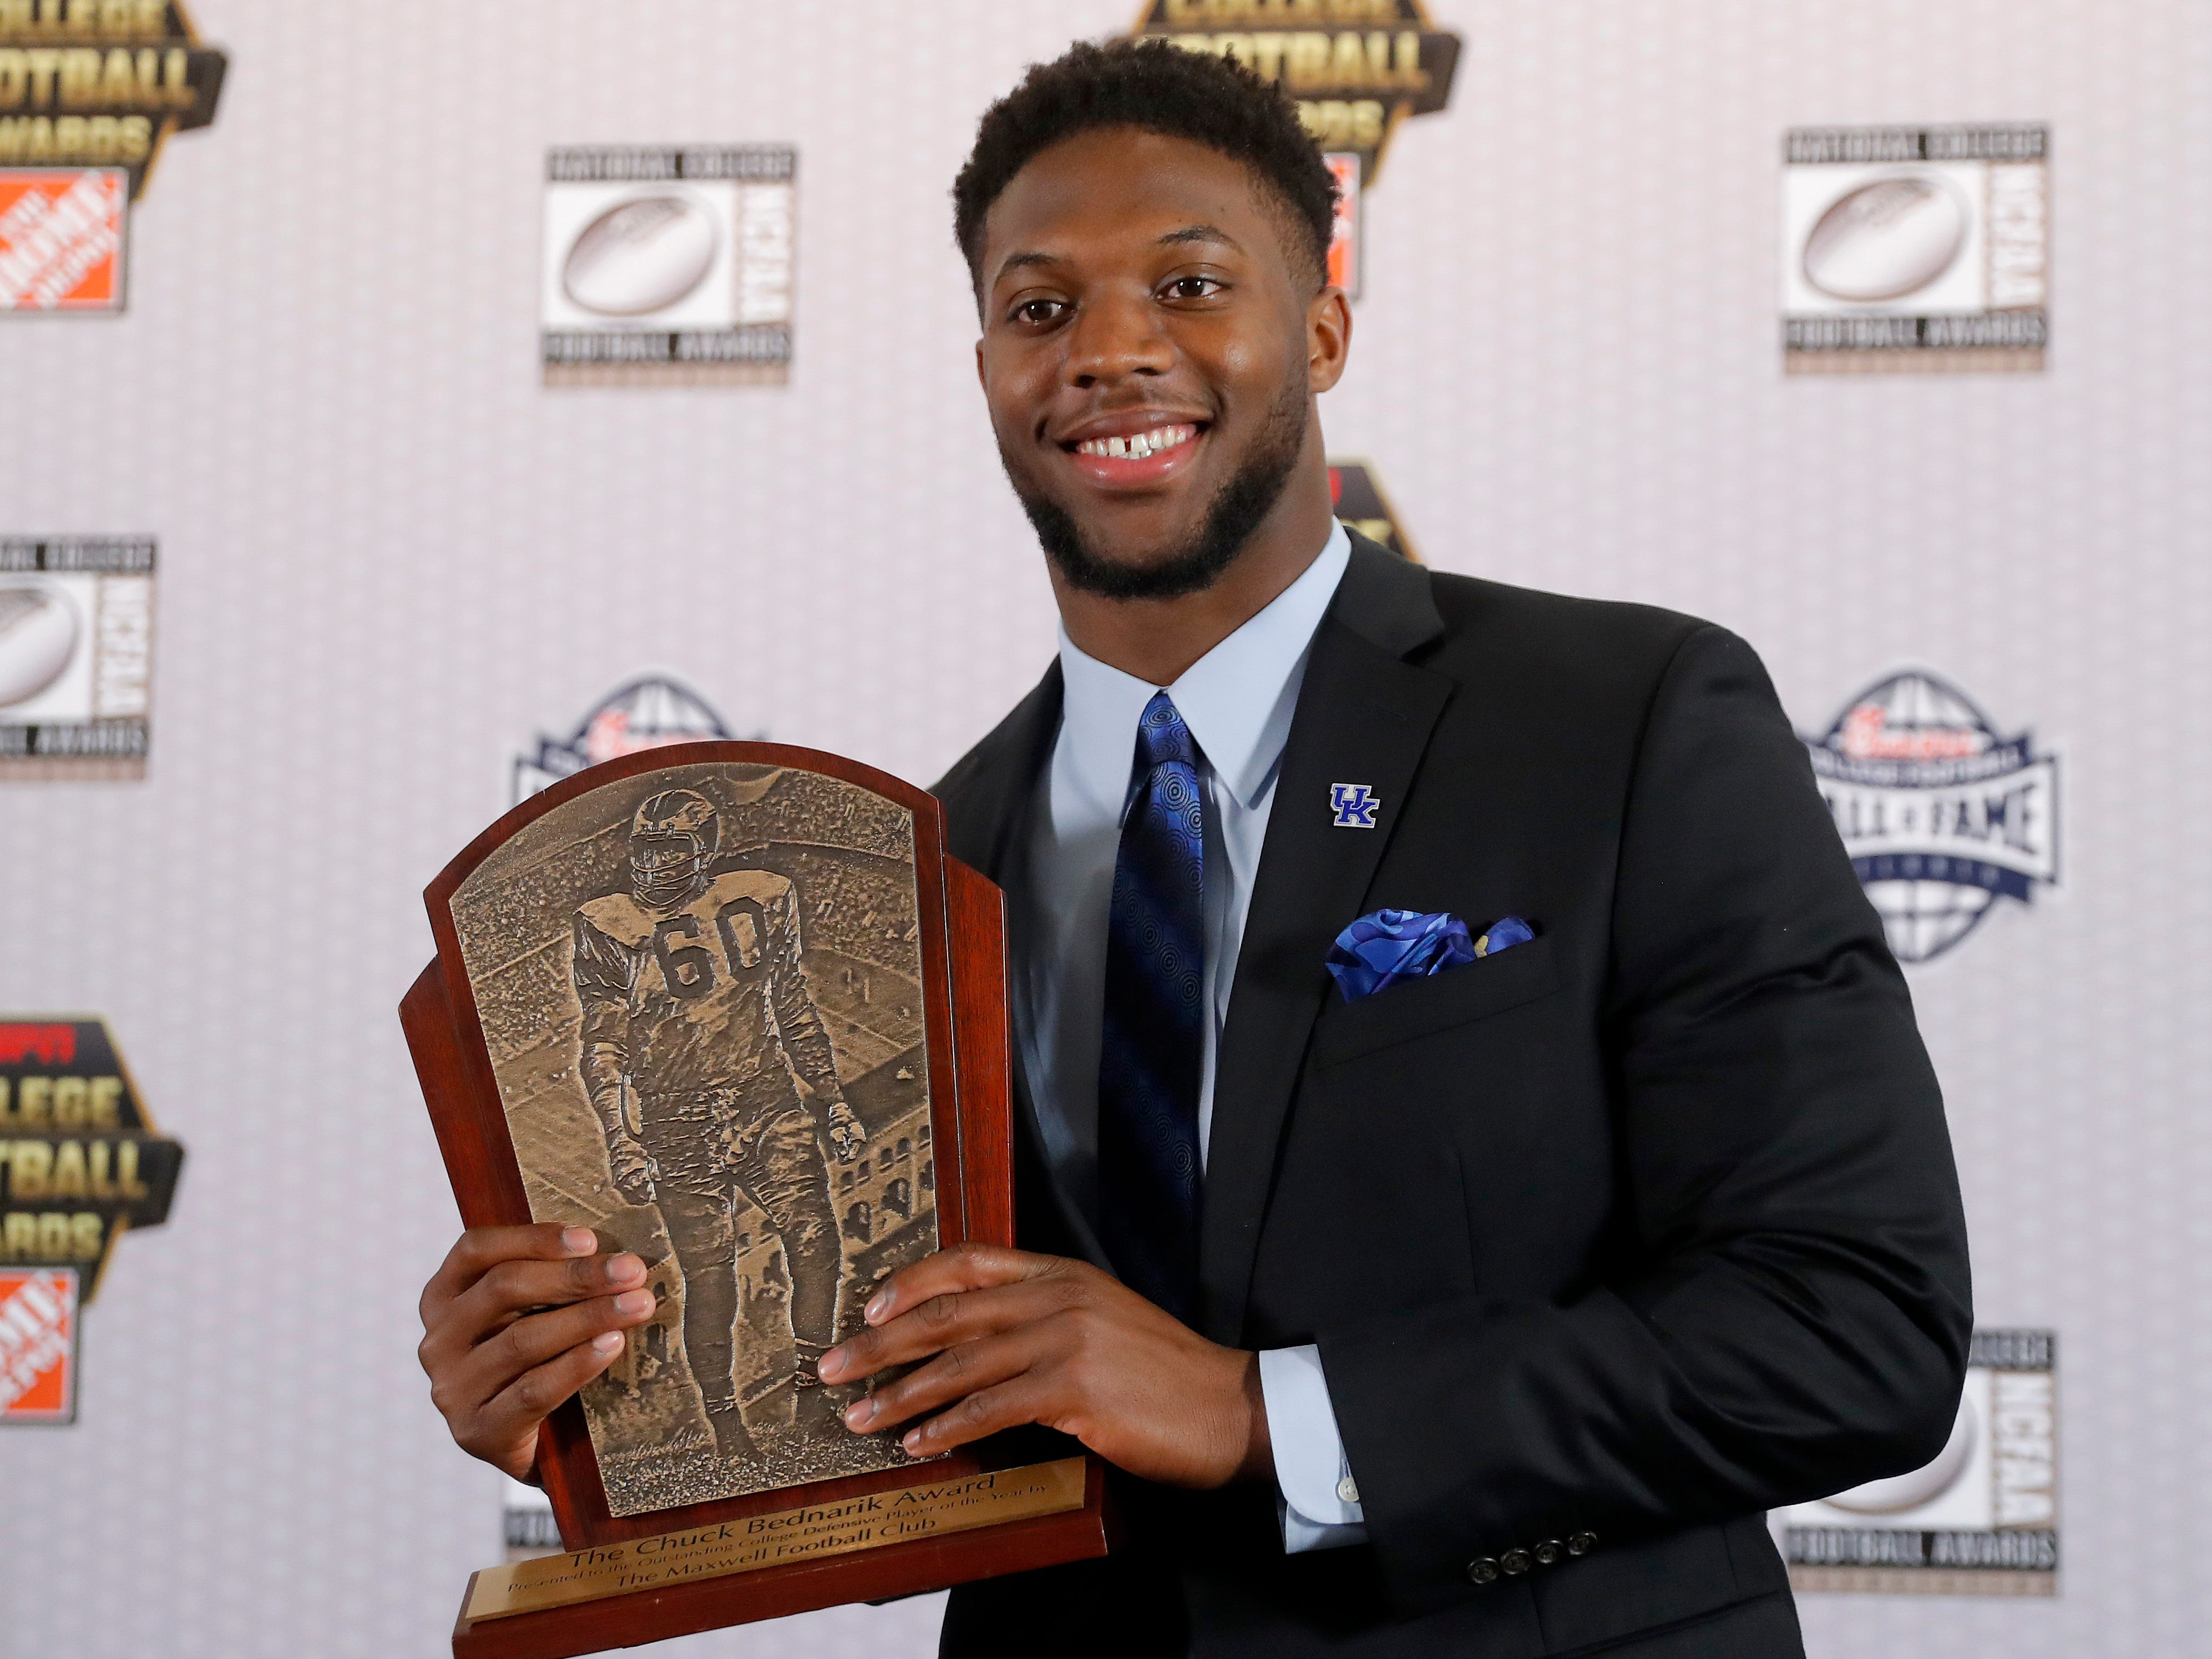 Kentucky's Josh Allen poses with the trophy after winning the Chuck Bednarik Award as college football's top defensive player of the year.